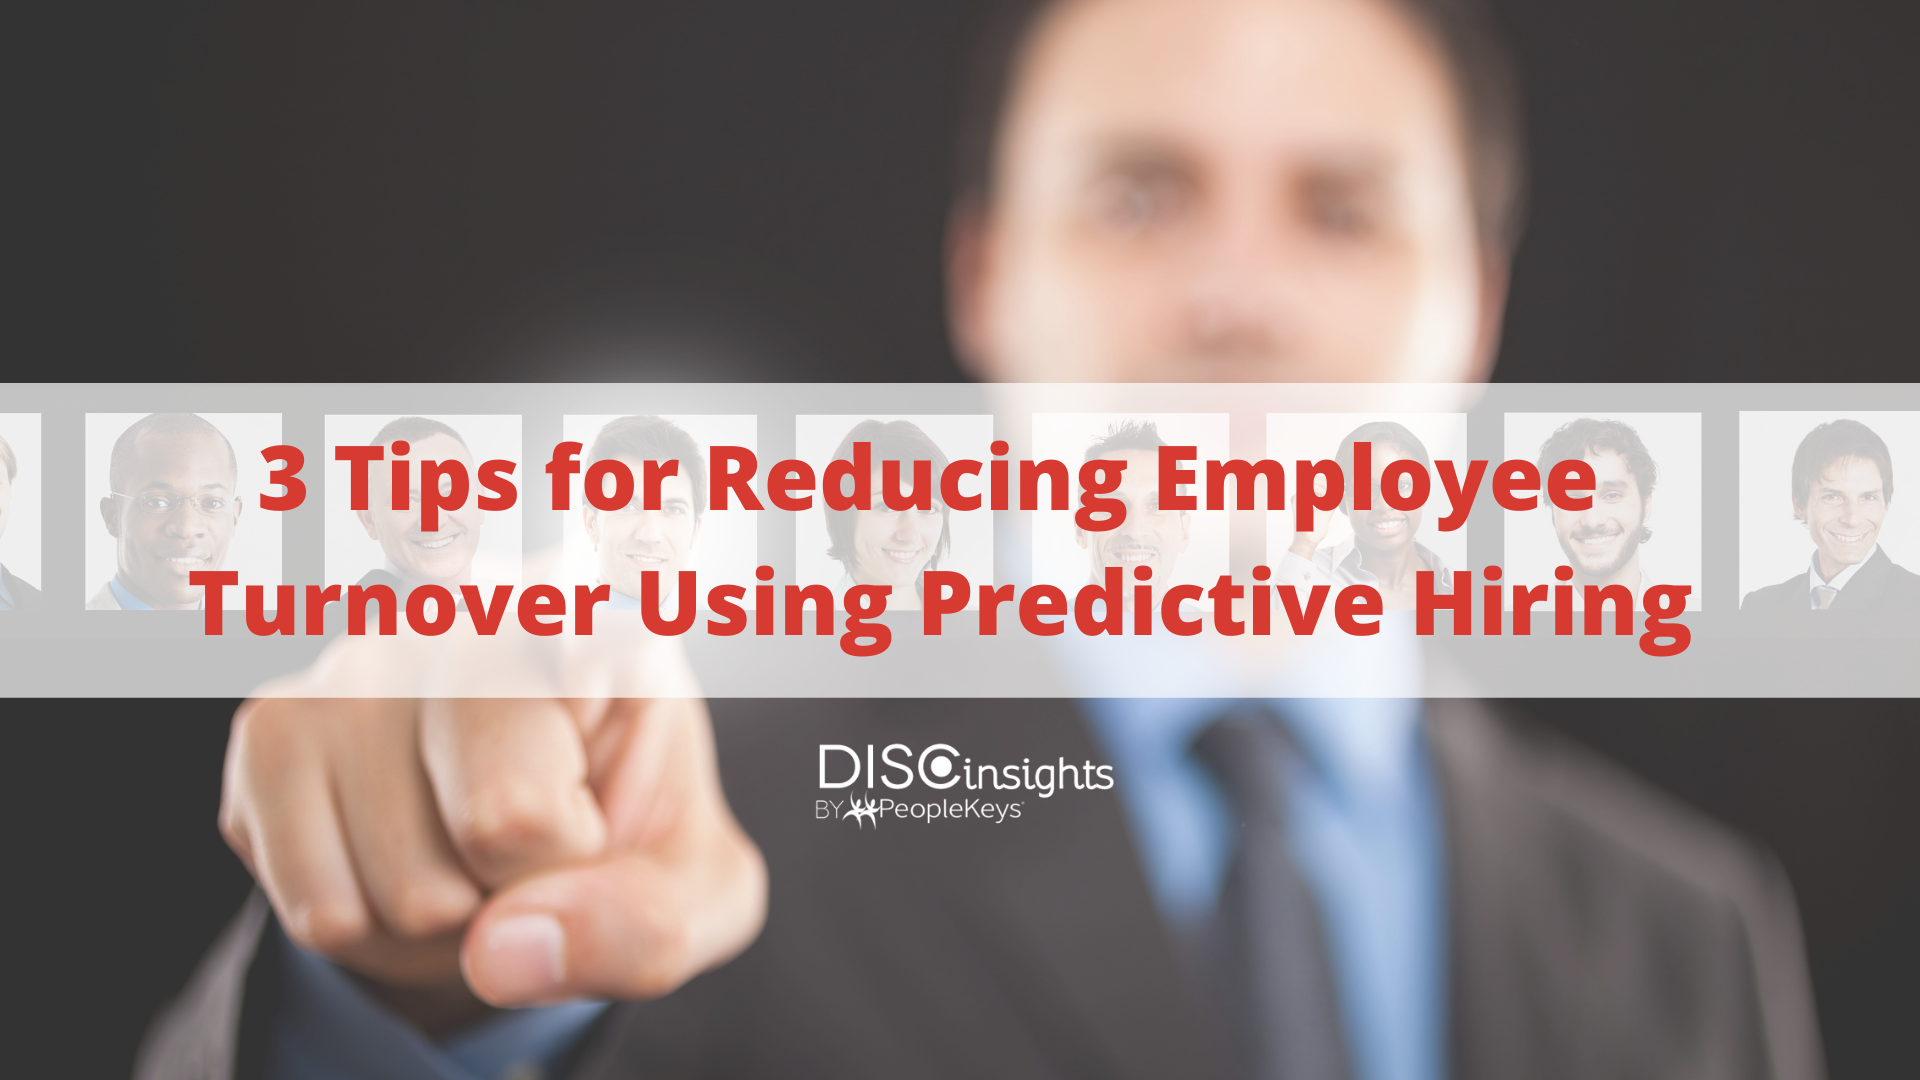 3 Tips for Reducing Employee Turnover Using Predictive Hiring